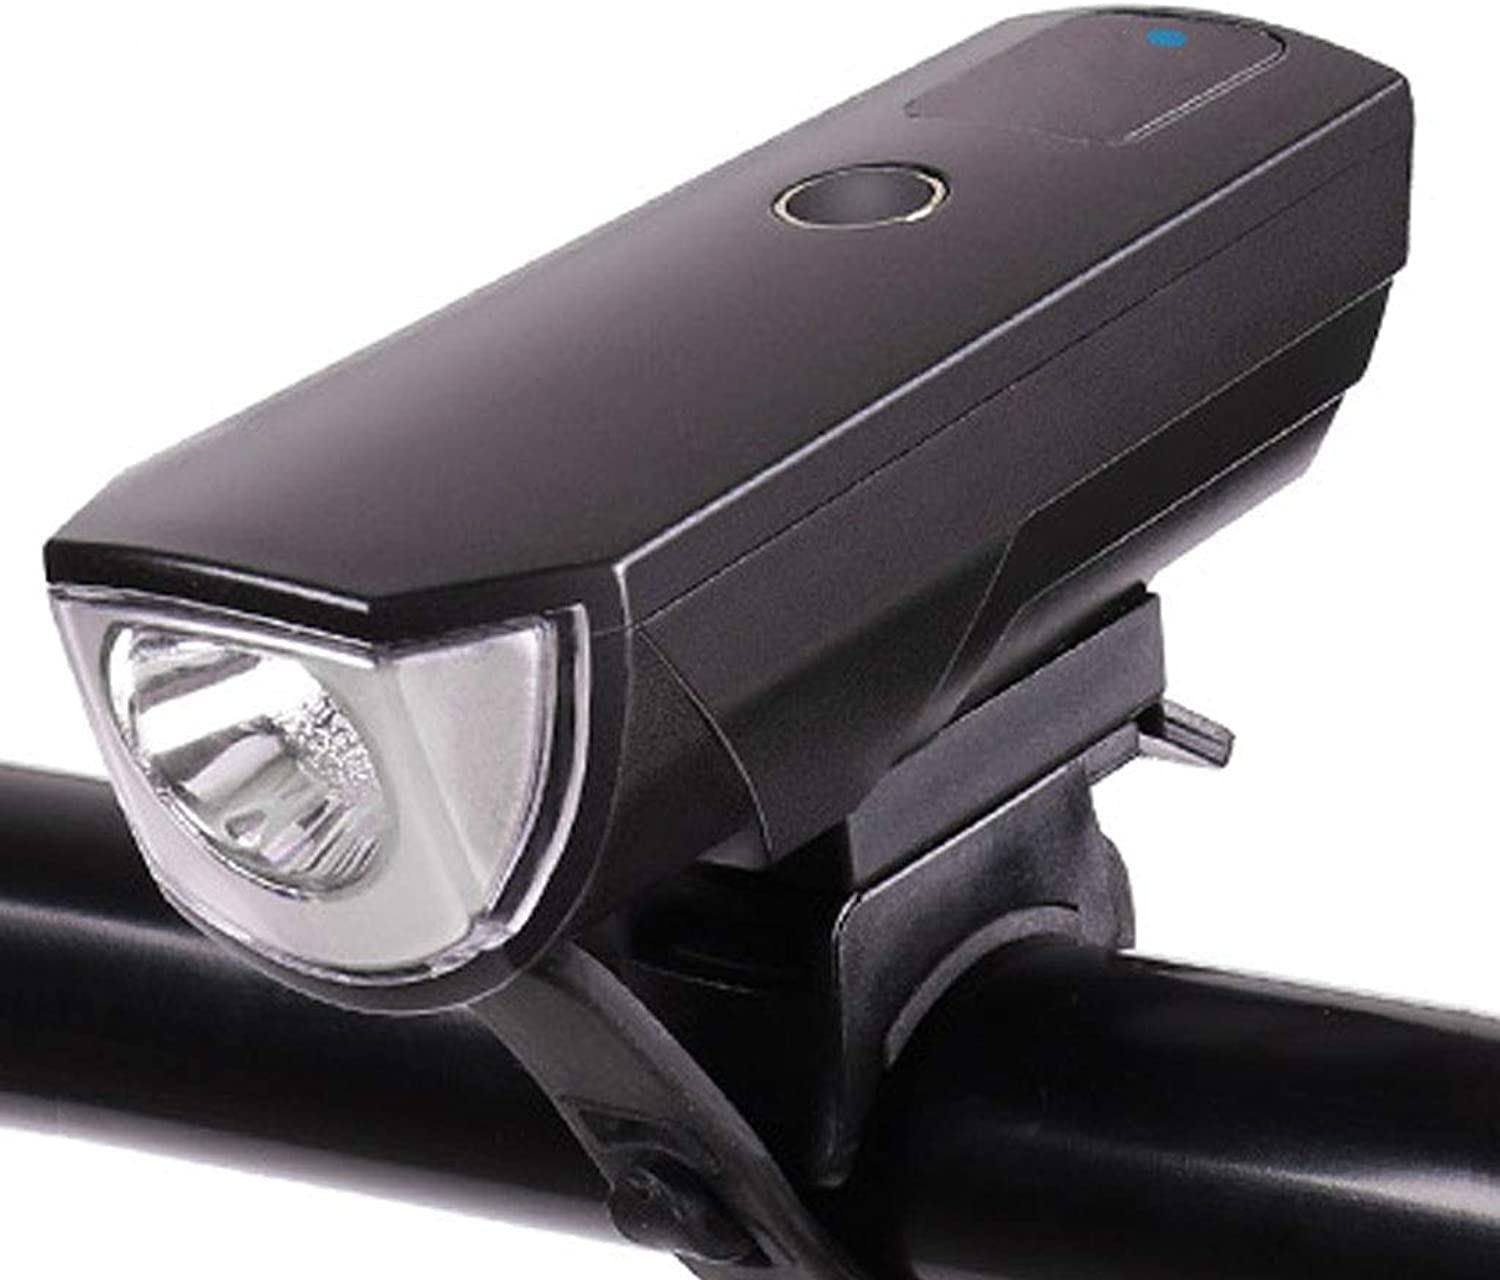 Mountain Bike Headlights, Flashlight Night Riding Headlights Glare Bicycle Accessories Riding Equipment